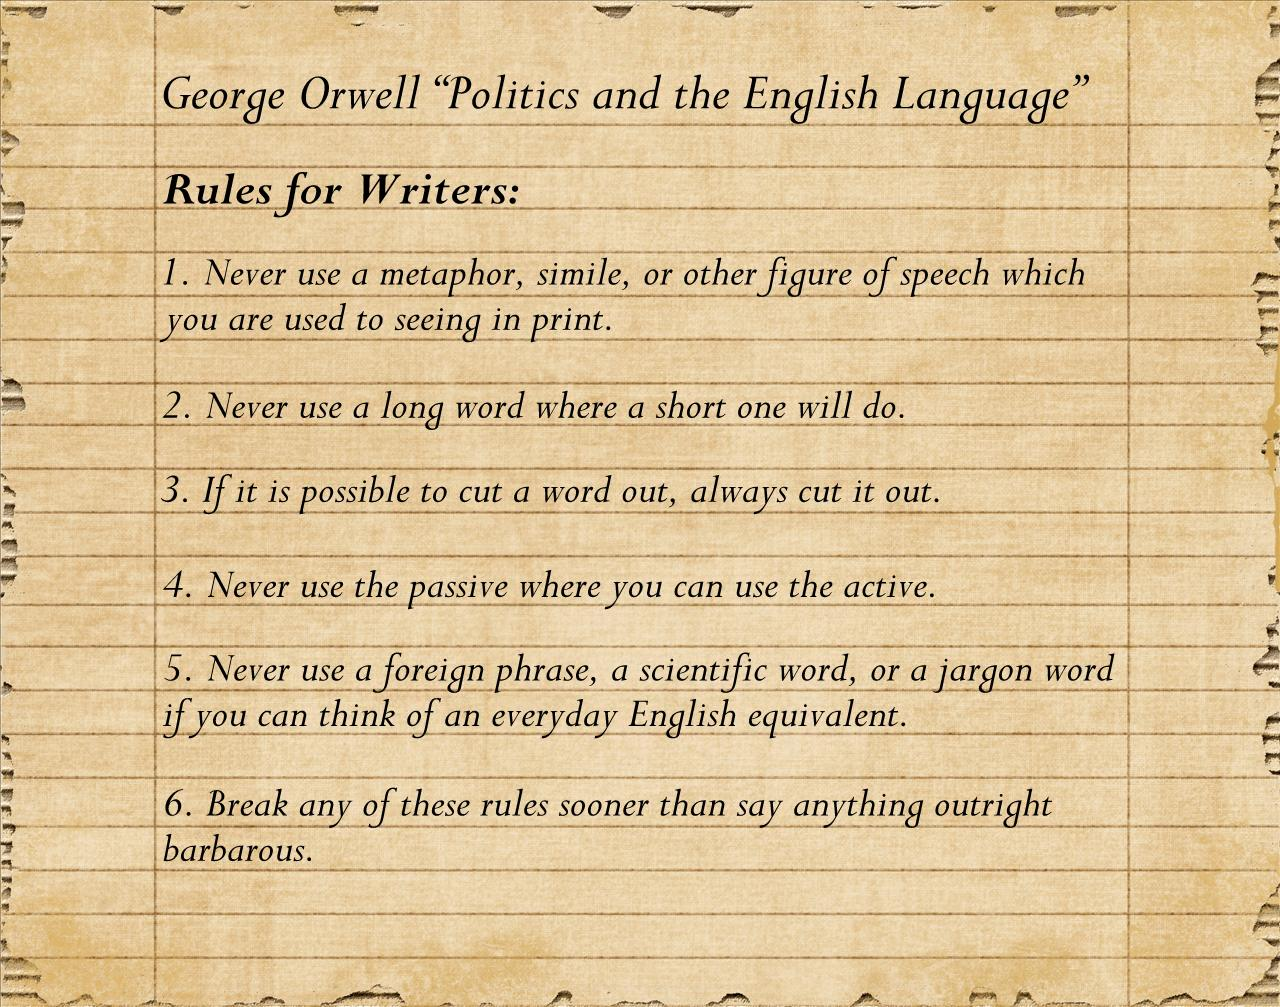 rules to writing Many of the so-called rules of writing don't really do what you'd want such rules to  do – make you a better writer there's nothing really wrong with splitting an.